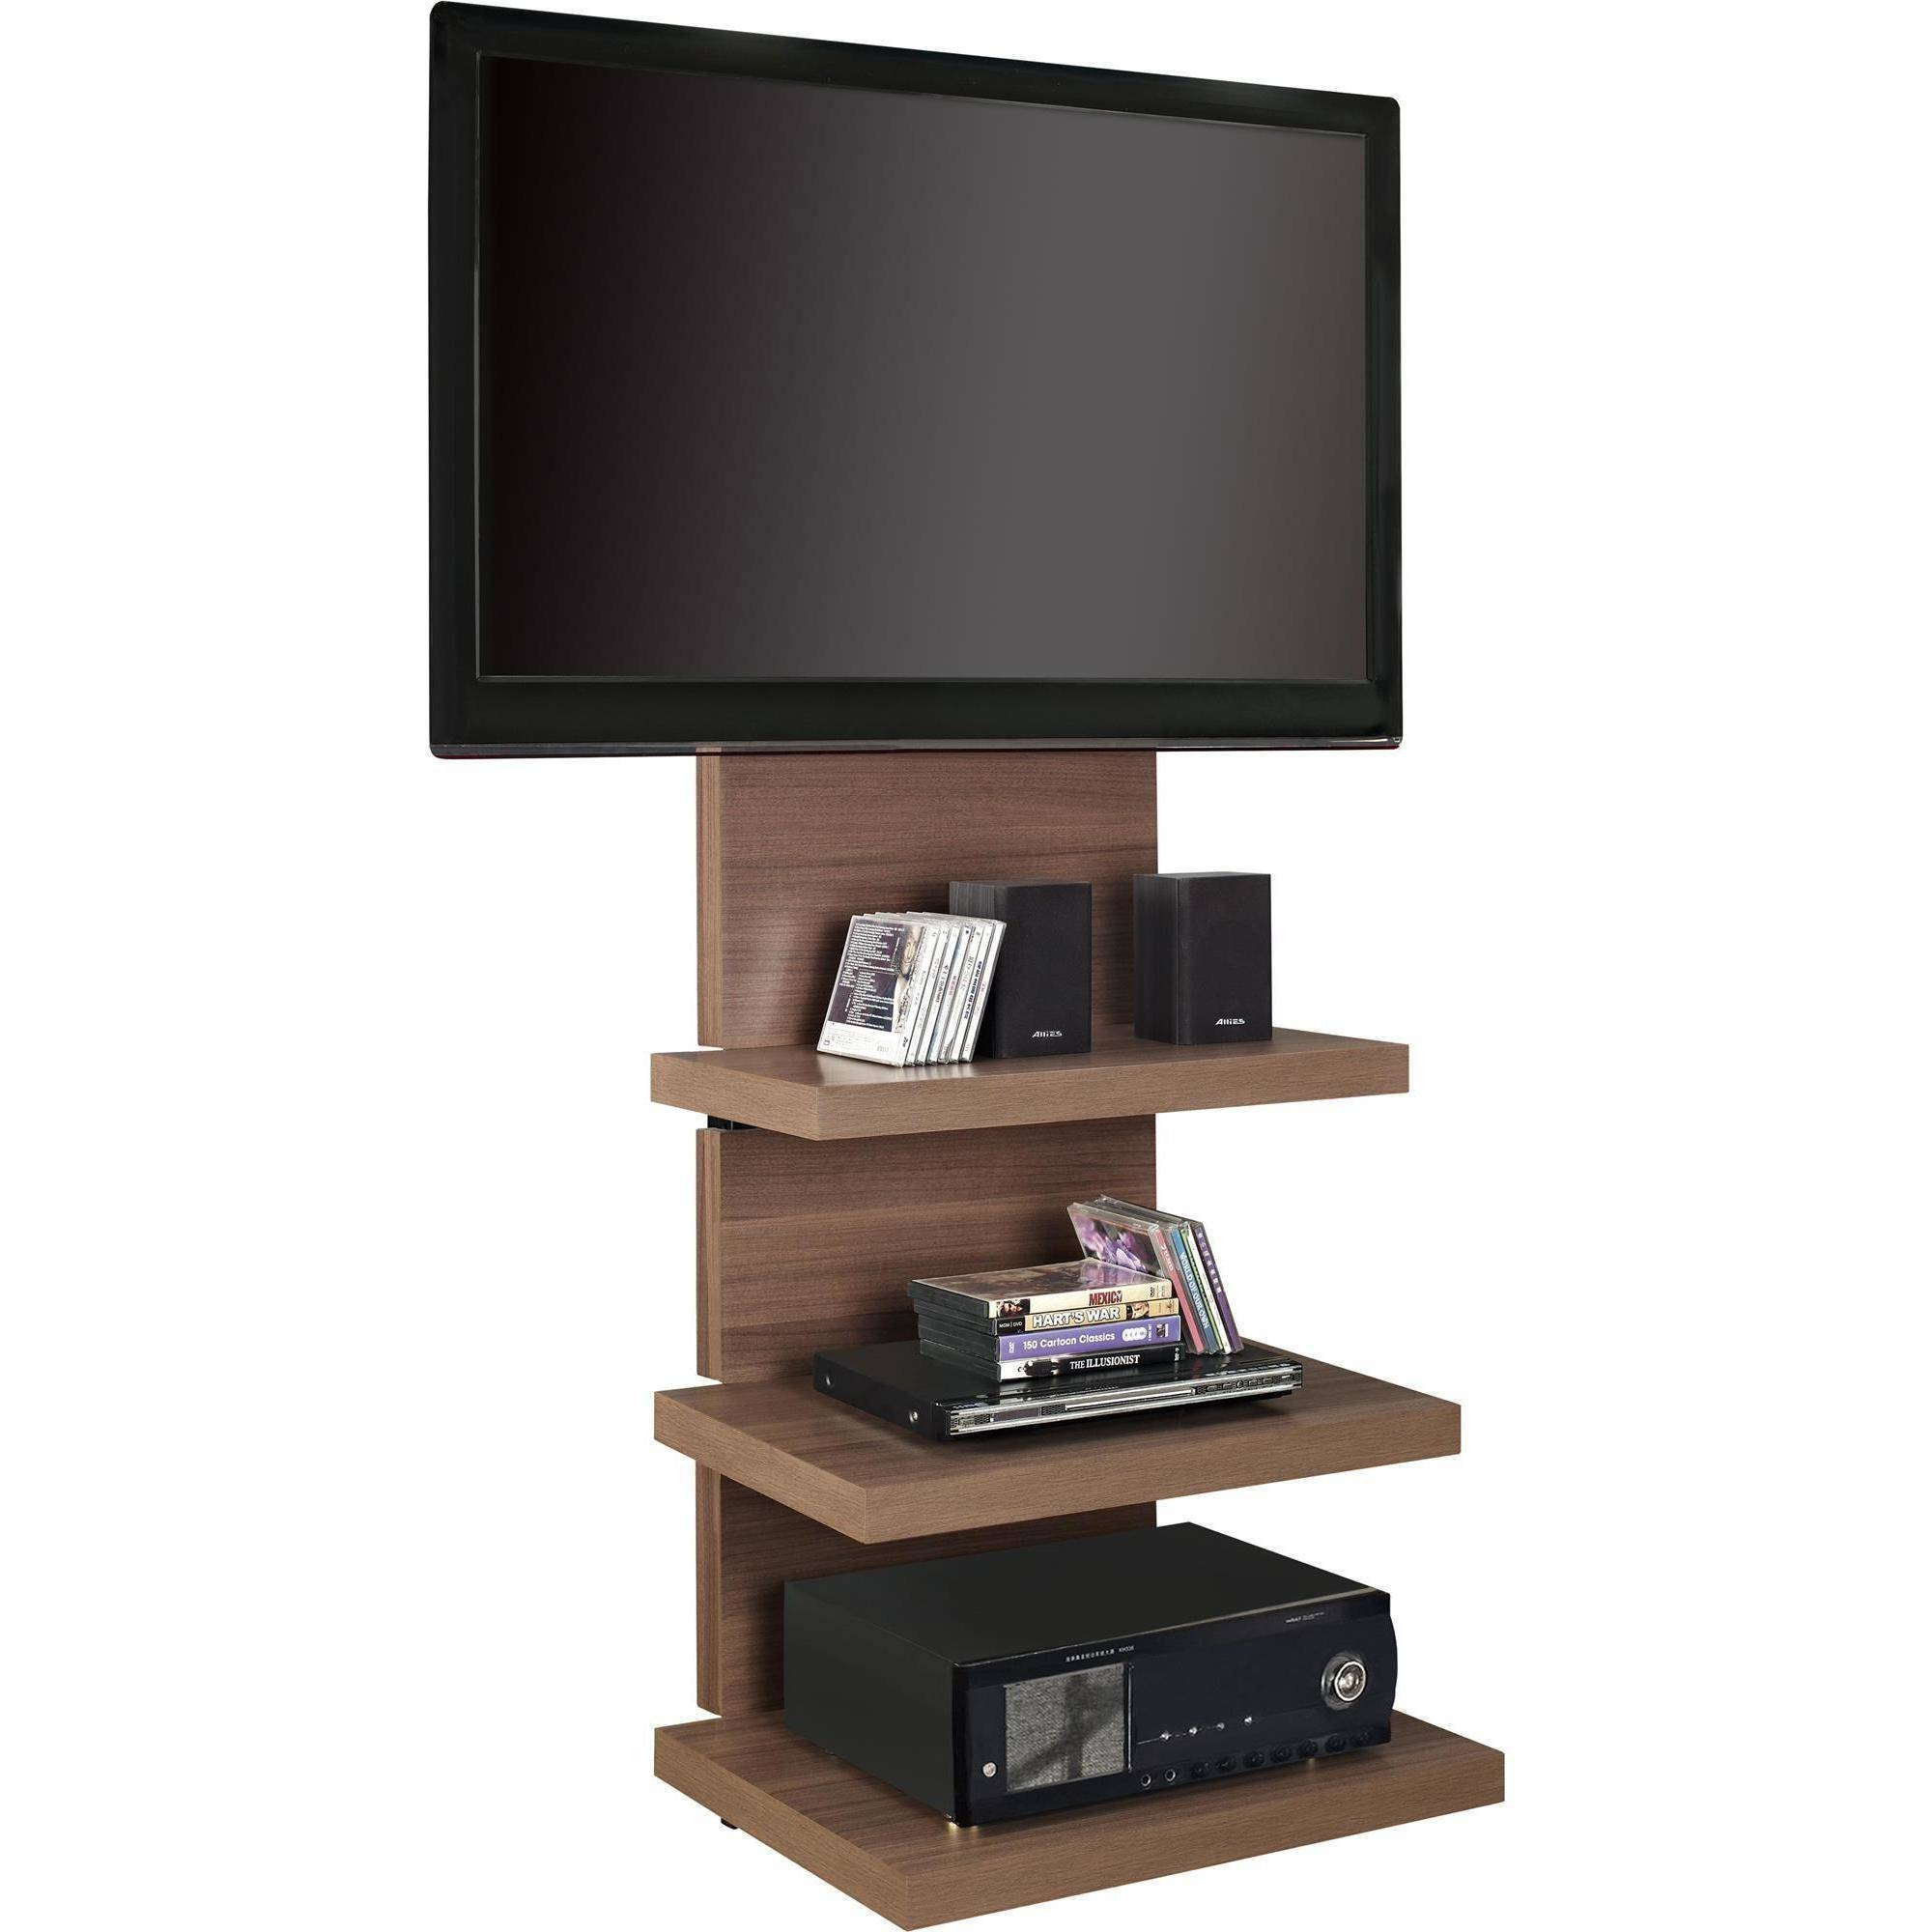 Ameriwood Home Elevation Altramount Tv Stand For Tvs Up To 60 intended for Como Tv Stands (Image 1 of 15)